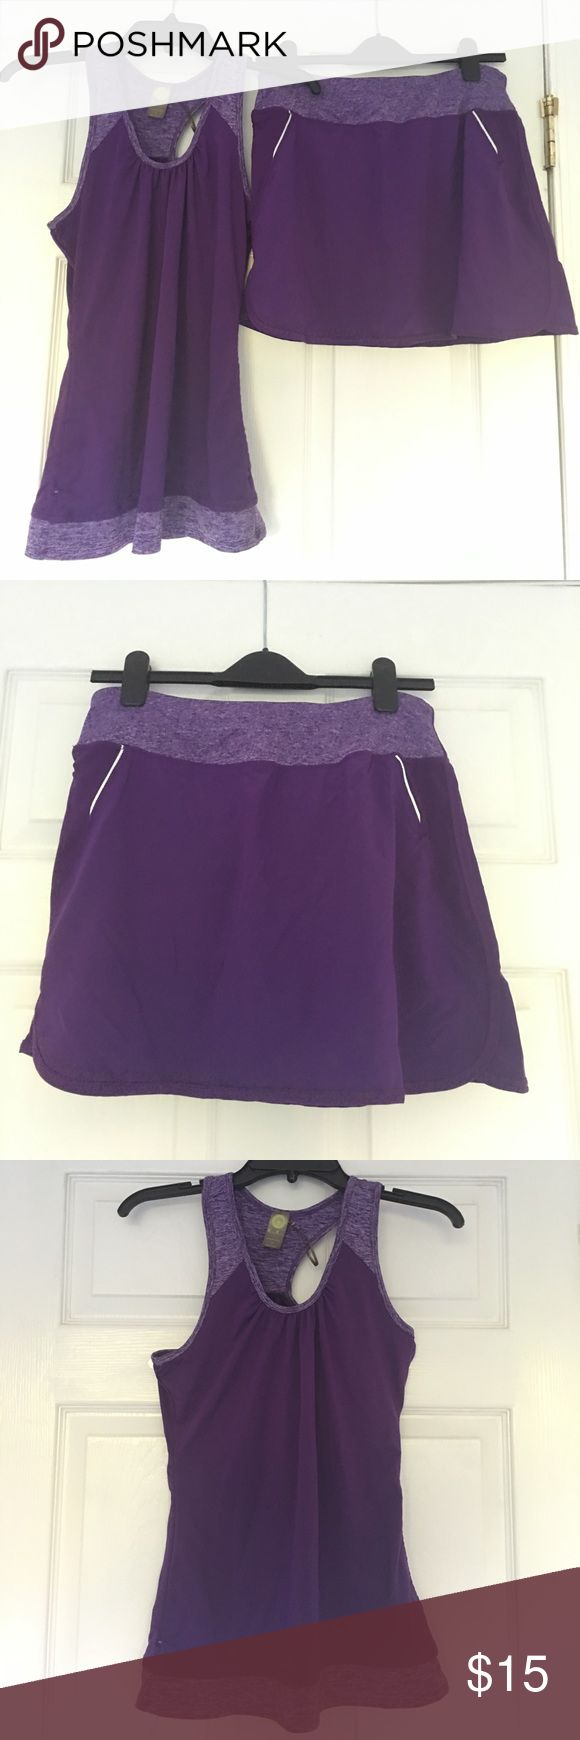 """Kiwi Kate Activeware Set with Tank and Skort Like-new set of athletic tank and skort set by Kiwi Kate. Both made with 4-way stretch and moisture wicking fabric. Skort comes with vented mesh lining underneath in matching purple. Tank measures at 27.5"""" and Skort measures at 14"""" overall.  Super cute set with heather purple trim, perfect to wear for tennis, golf or just a day in the sun!  Available with small or medium Skort, all tanks are small.  Must buy as set. Kiwi Kate Other"""